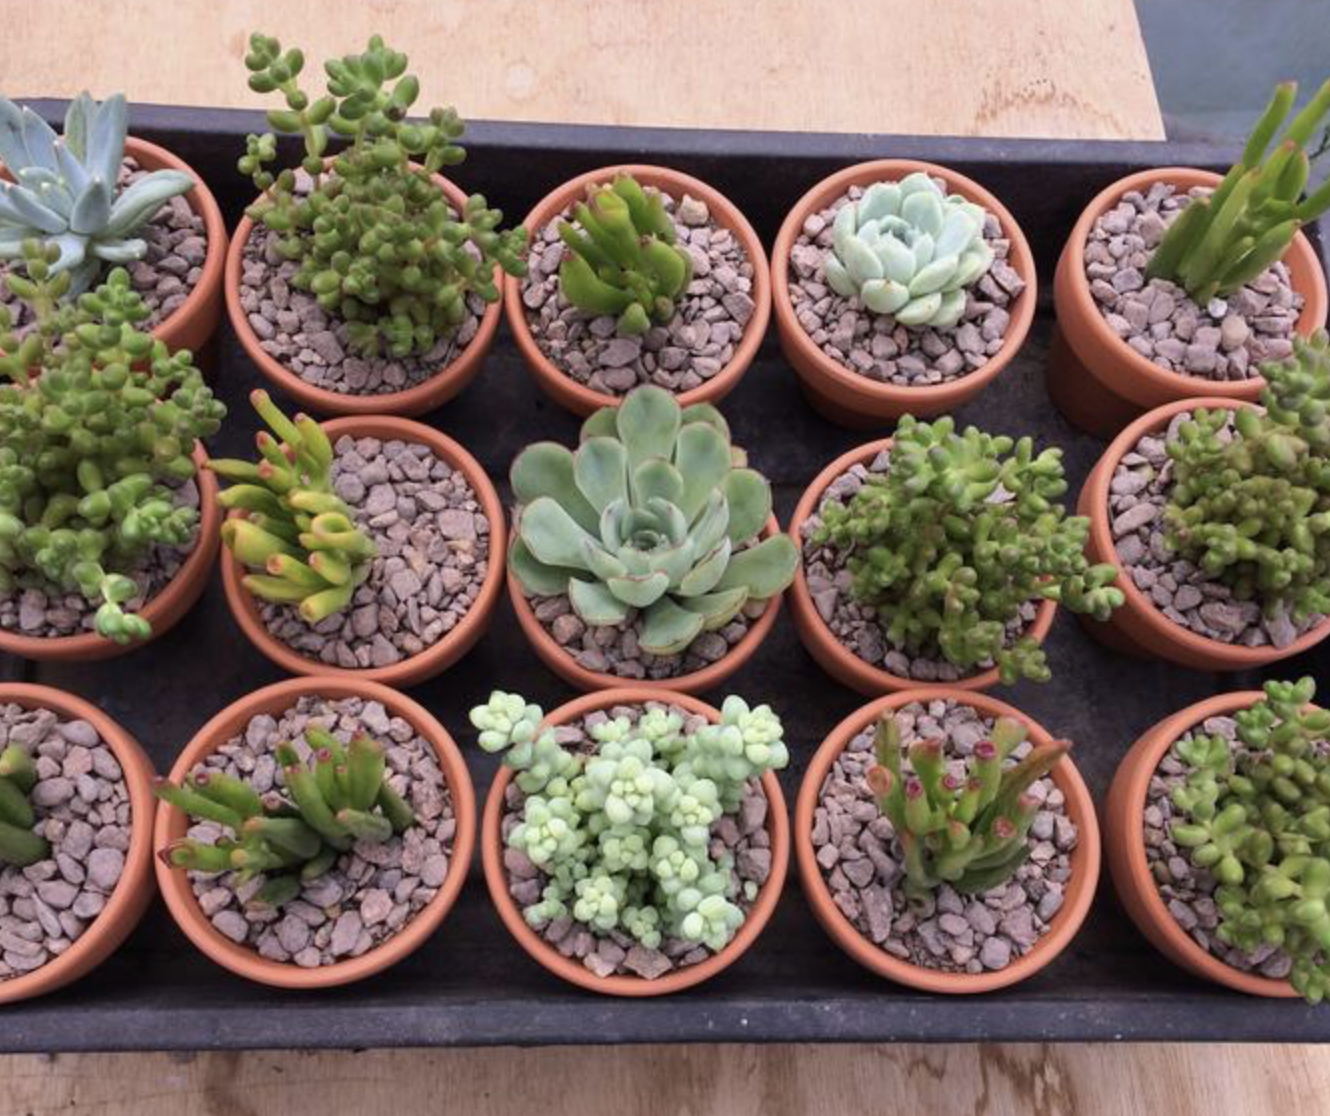 Have a group of mini succulents for impact. 15 mini plants £56.75 from blueleaf plants' etsy shop